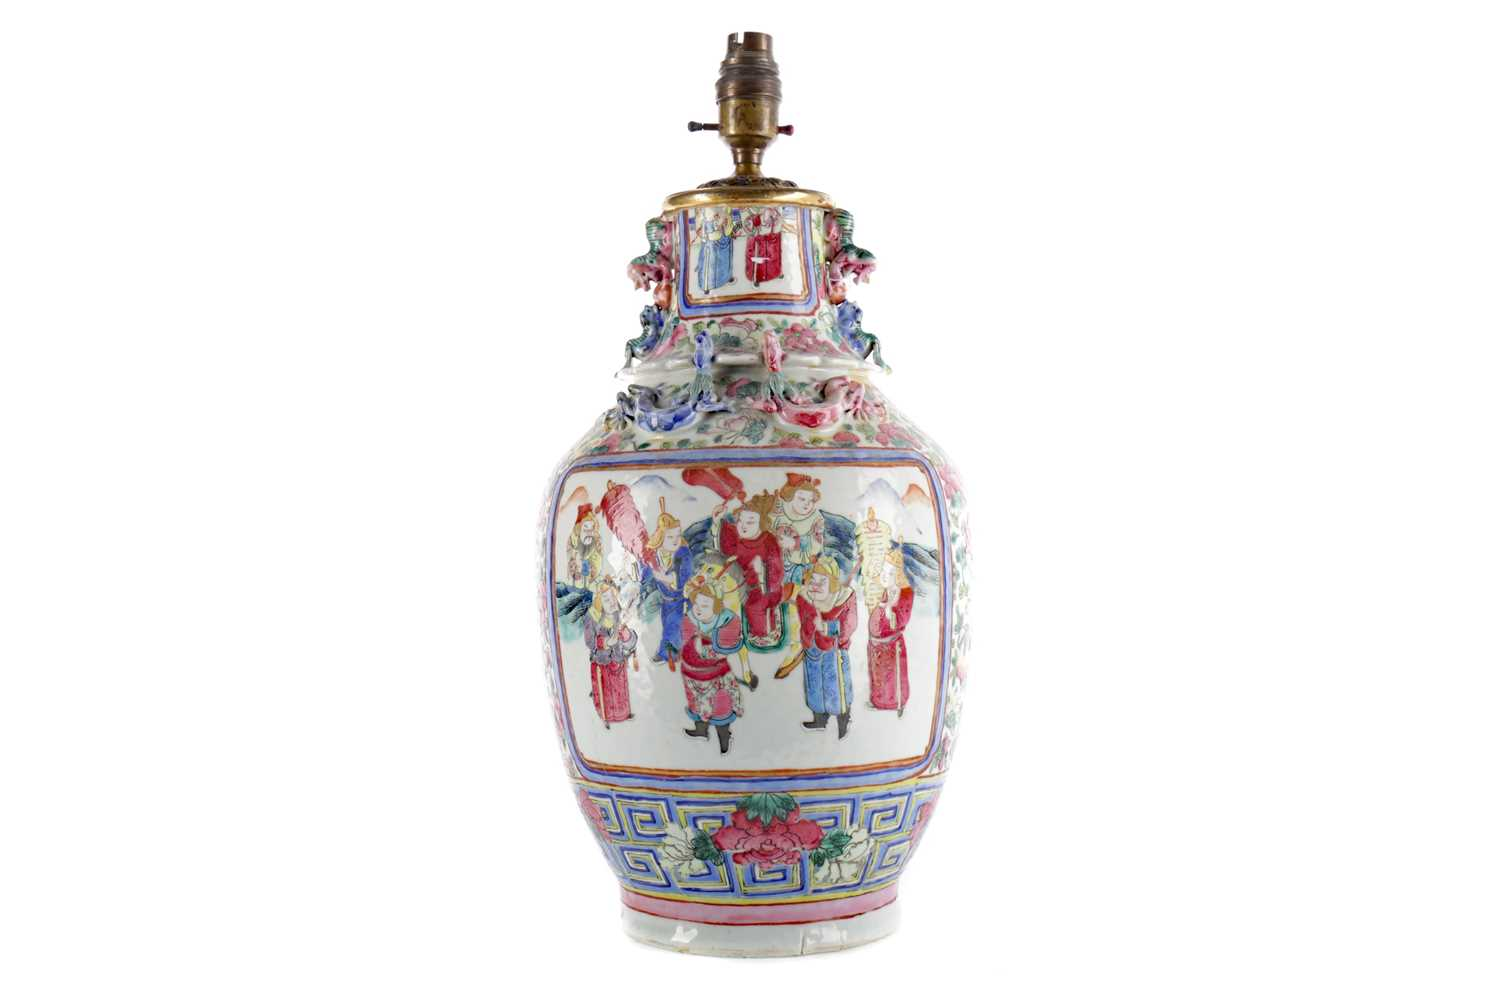 Lot 773 - AN EARLY 20TH CENTURY CHINESE FAMILLE ROSE VASE CONVERTED TO A LAMP